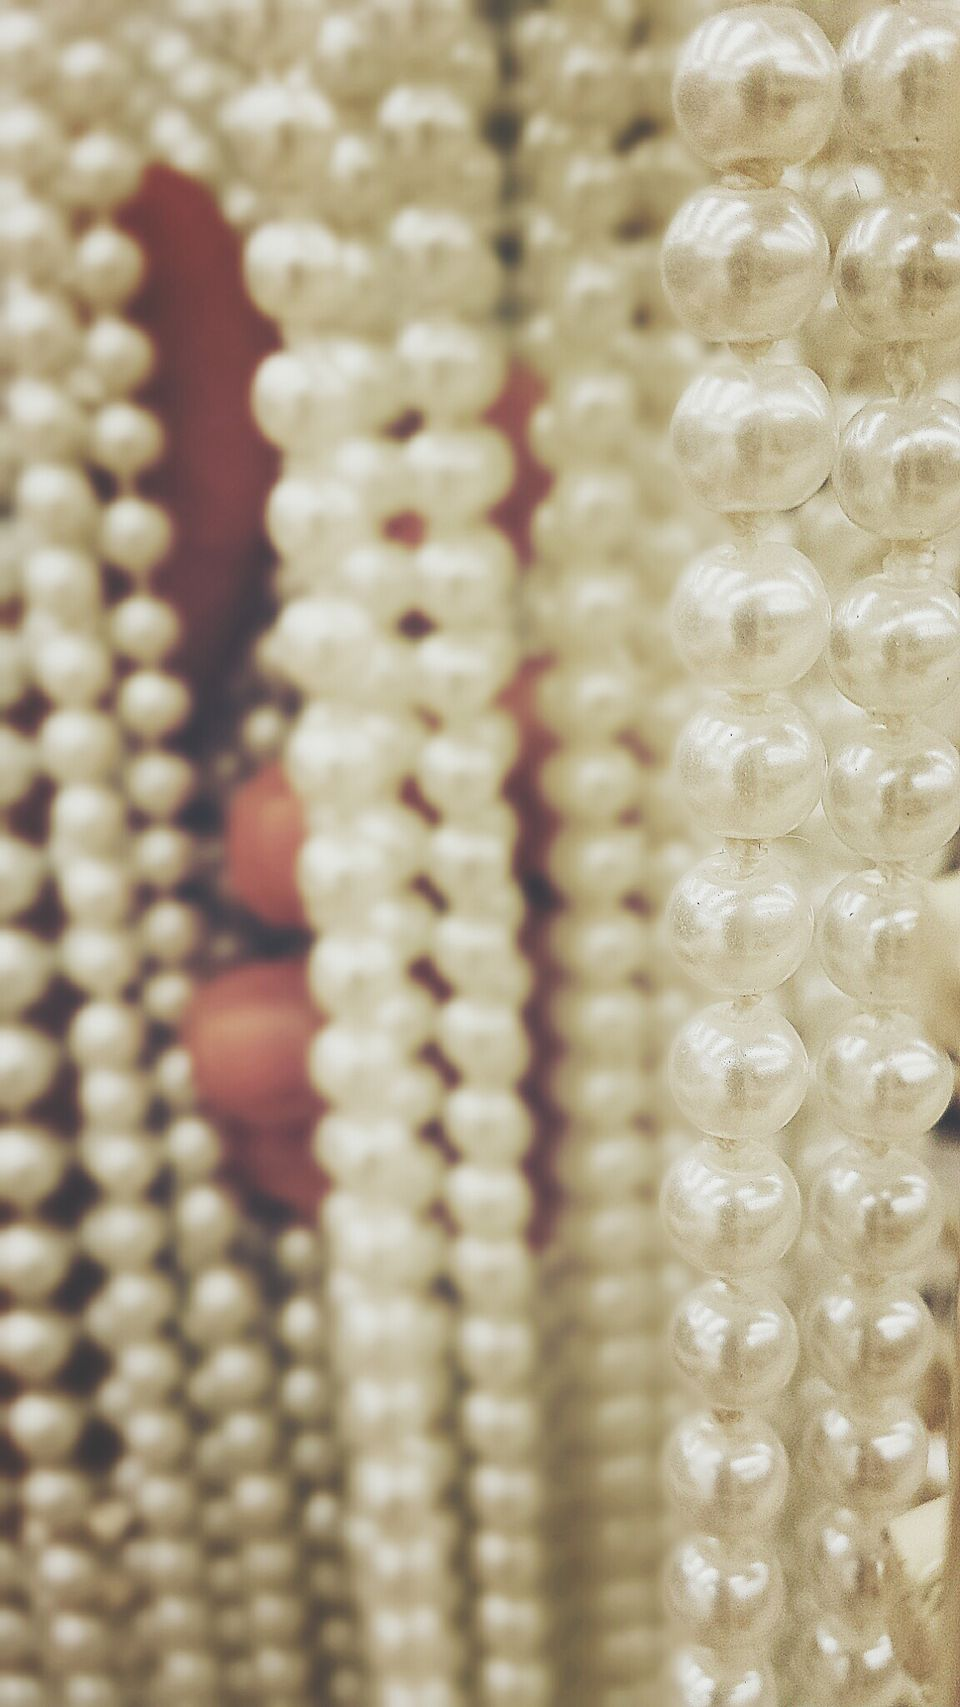 Fun Facts About Pearls